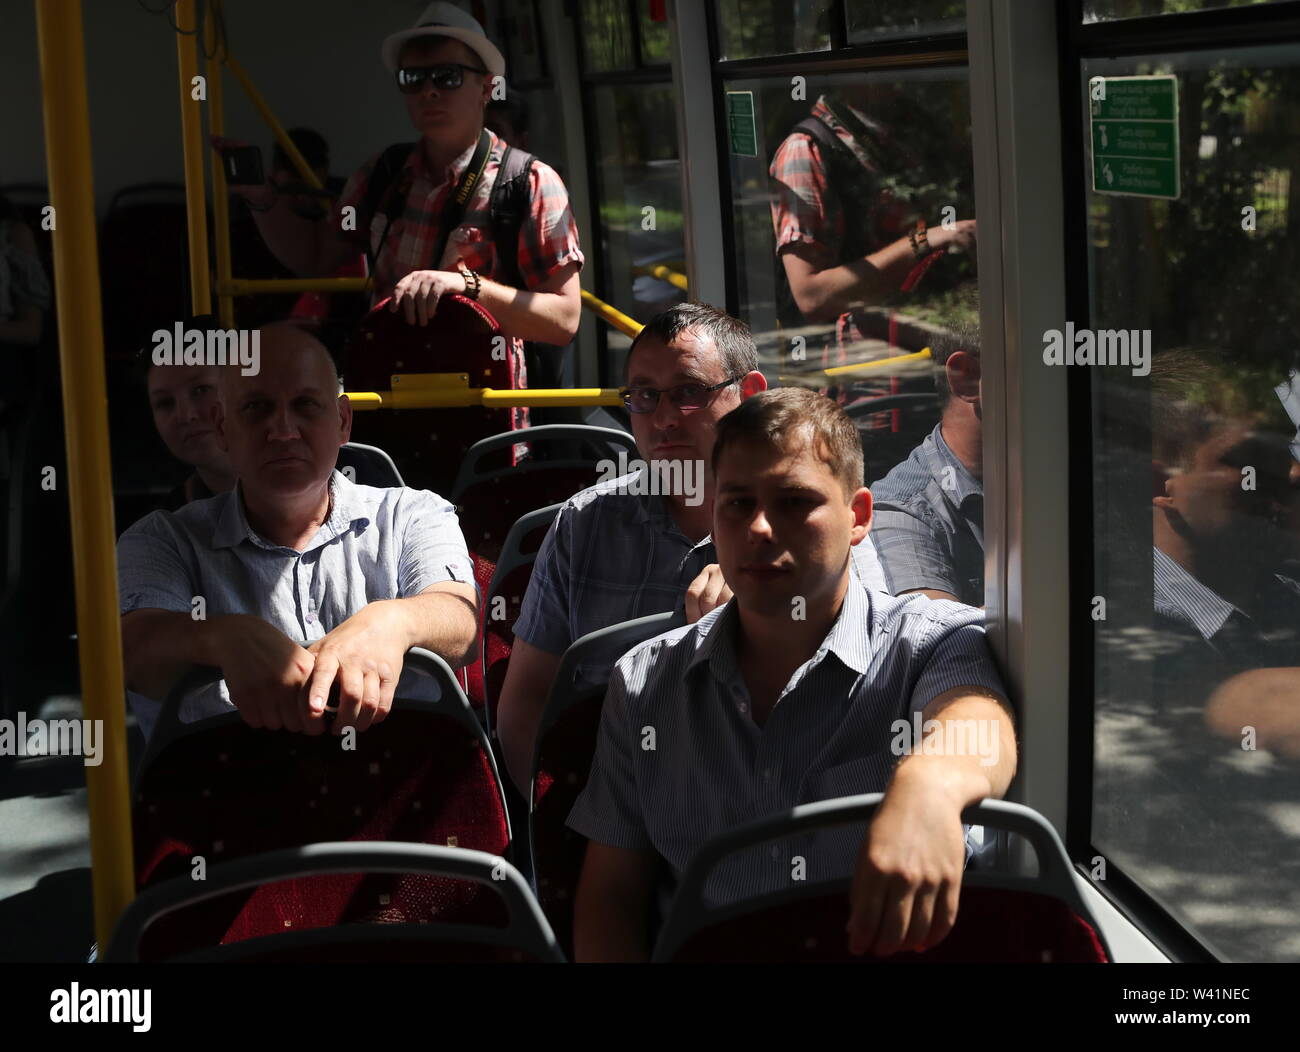 Yekaterinburg, Russia. 19th July, 2019. YEKATERINBURG, RUSSIA - JULY 19, 2019: Passengers in a Belkommunmash electric bus during a test run along Trolleybus Route 1, from Shchorsa Street to a railway station. The bus, manufactured by Belarus' Belkommunmash Company, was displayed at the 2019 Innoprom exhibition. Donat Sorokin/TASS Credit: ITAR-TASS News Agency/Alamy Live News - Stock Image